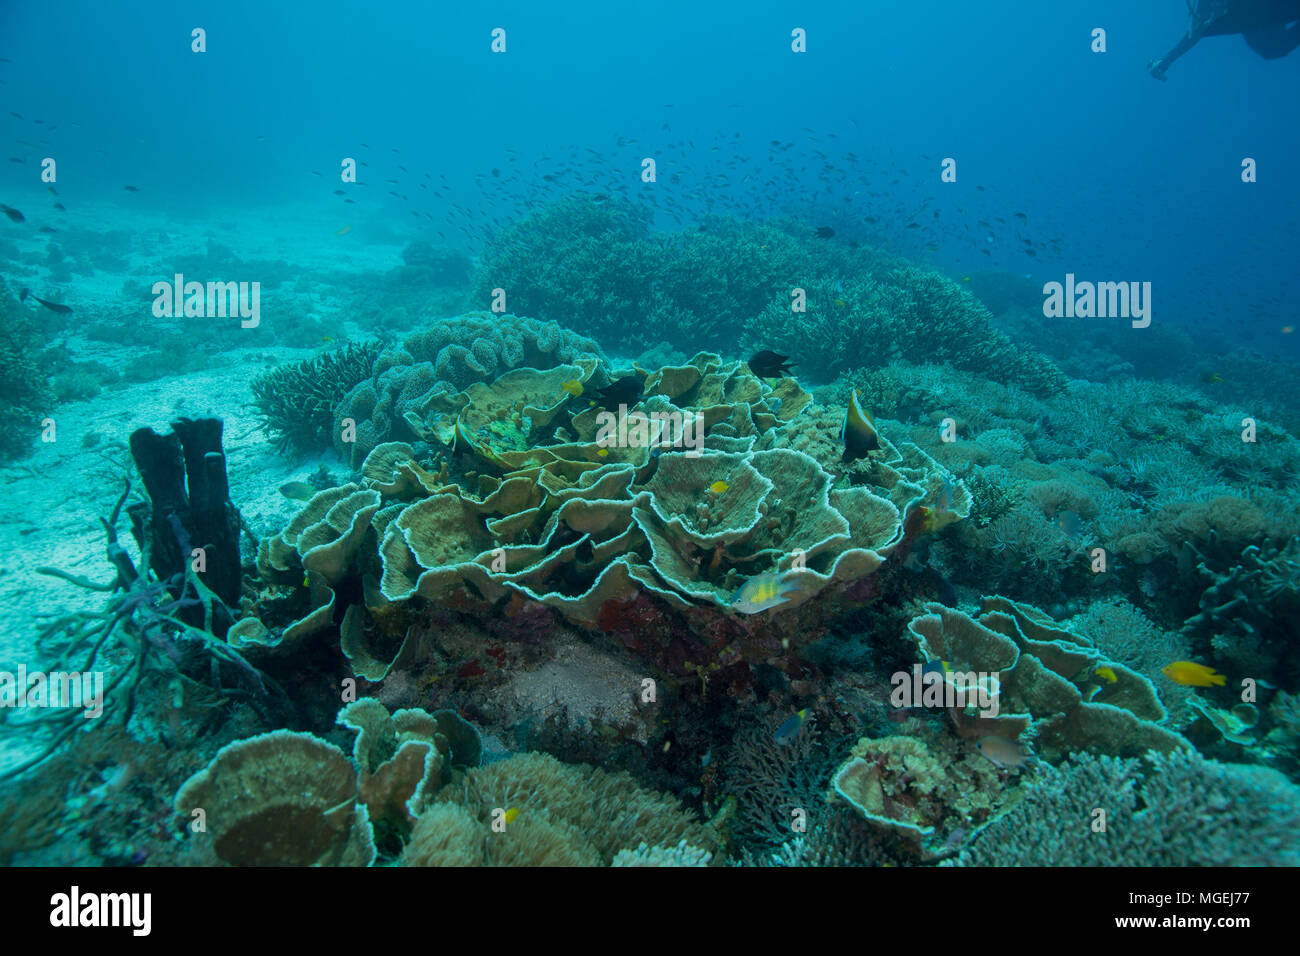 Beautiful soft and hard corals. Picture was taken in the Ceram sea, Raja Ampat, West Papua, Indonesia Stock Photo